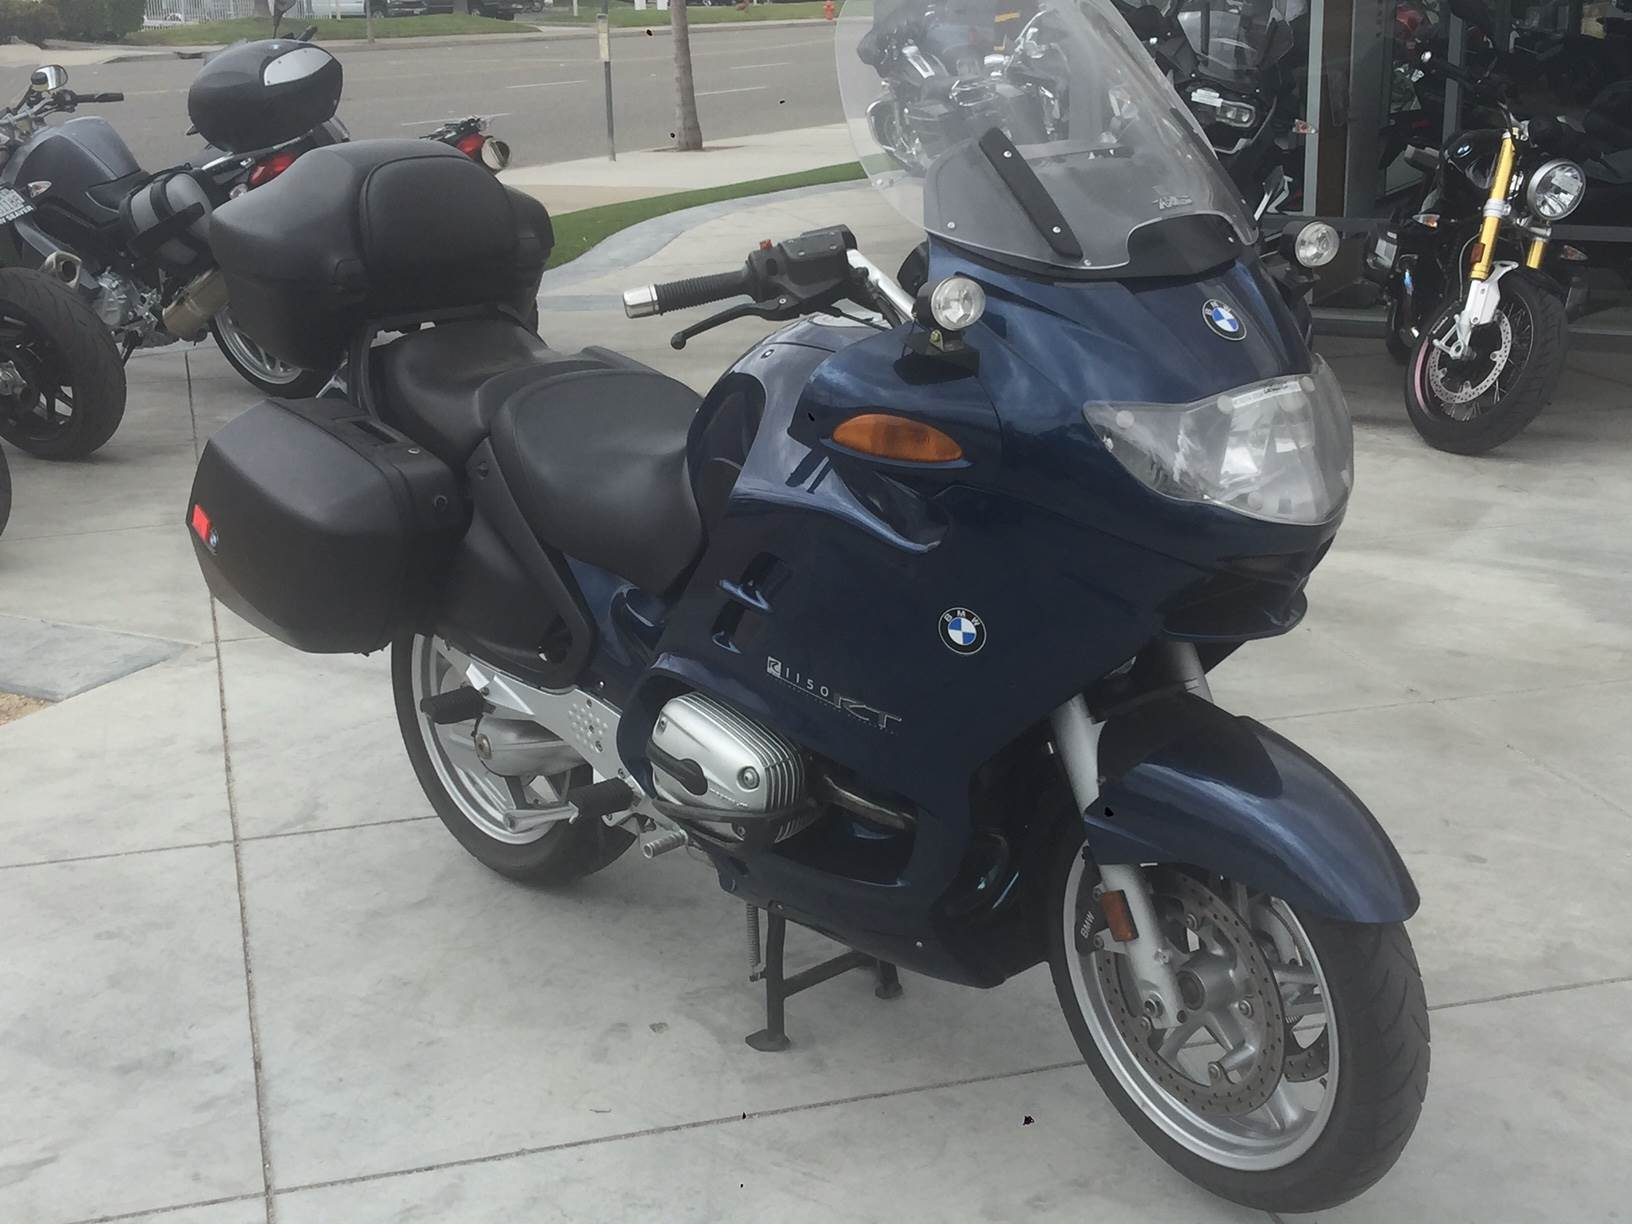 2004 BMW R 1150 RT (ABS) in Orange, California